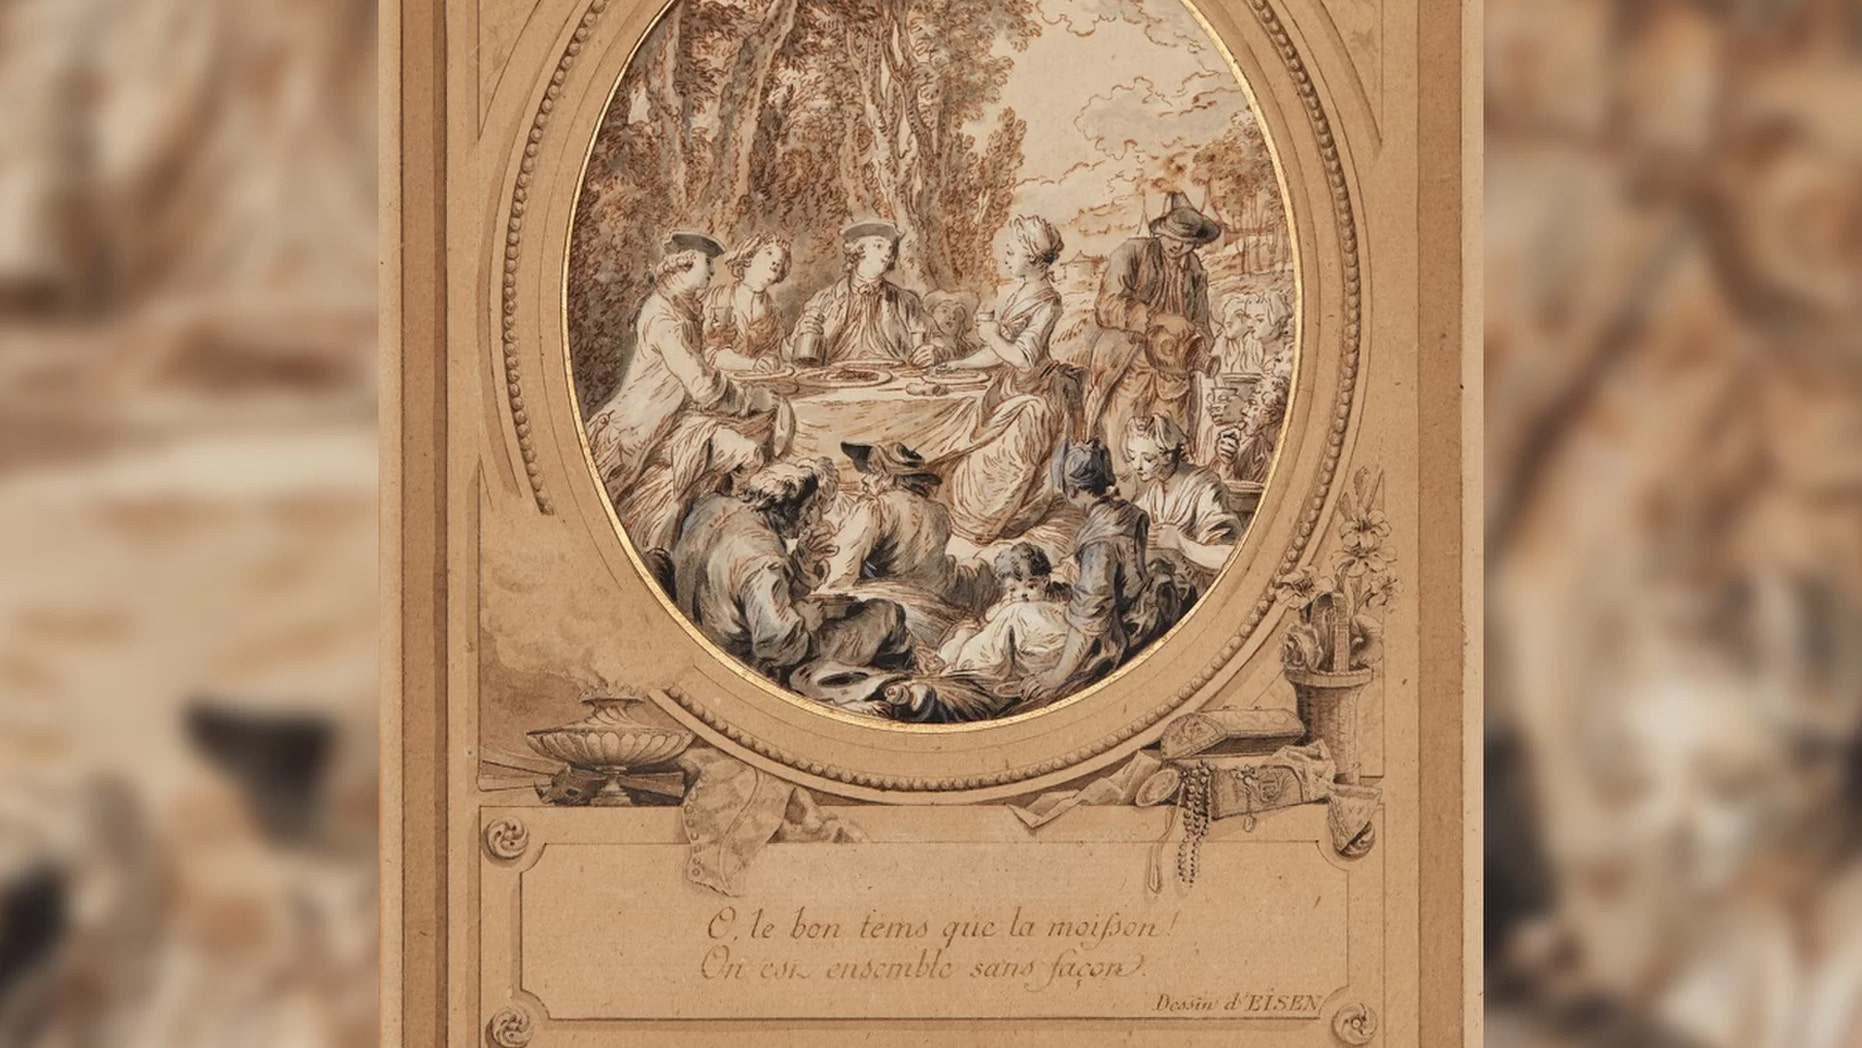 Preparatory sketch with a drawn frame for an illustration of the Comedy Les Moissonneurs, 1768, by Charles Dominique Joseph Eisen (1720–1778). Credit: Charles Dominique Joseph Eisen/Courtesy of the Bundeskunsthalle museum